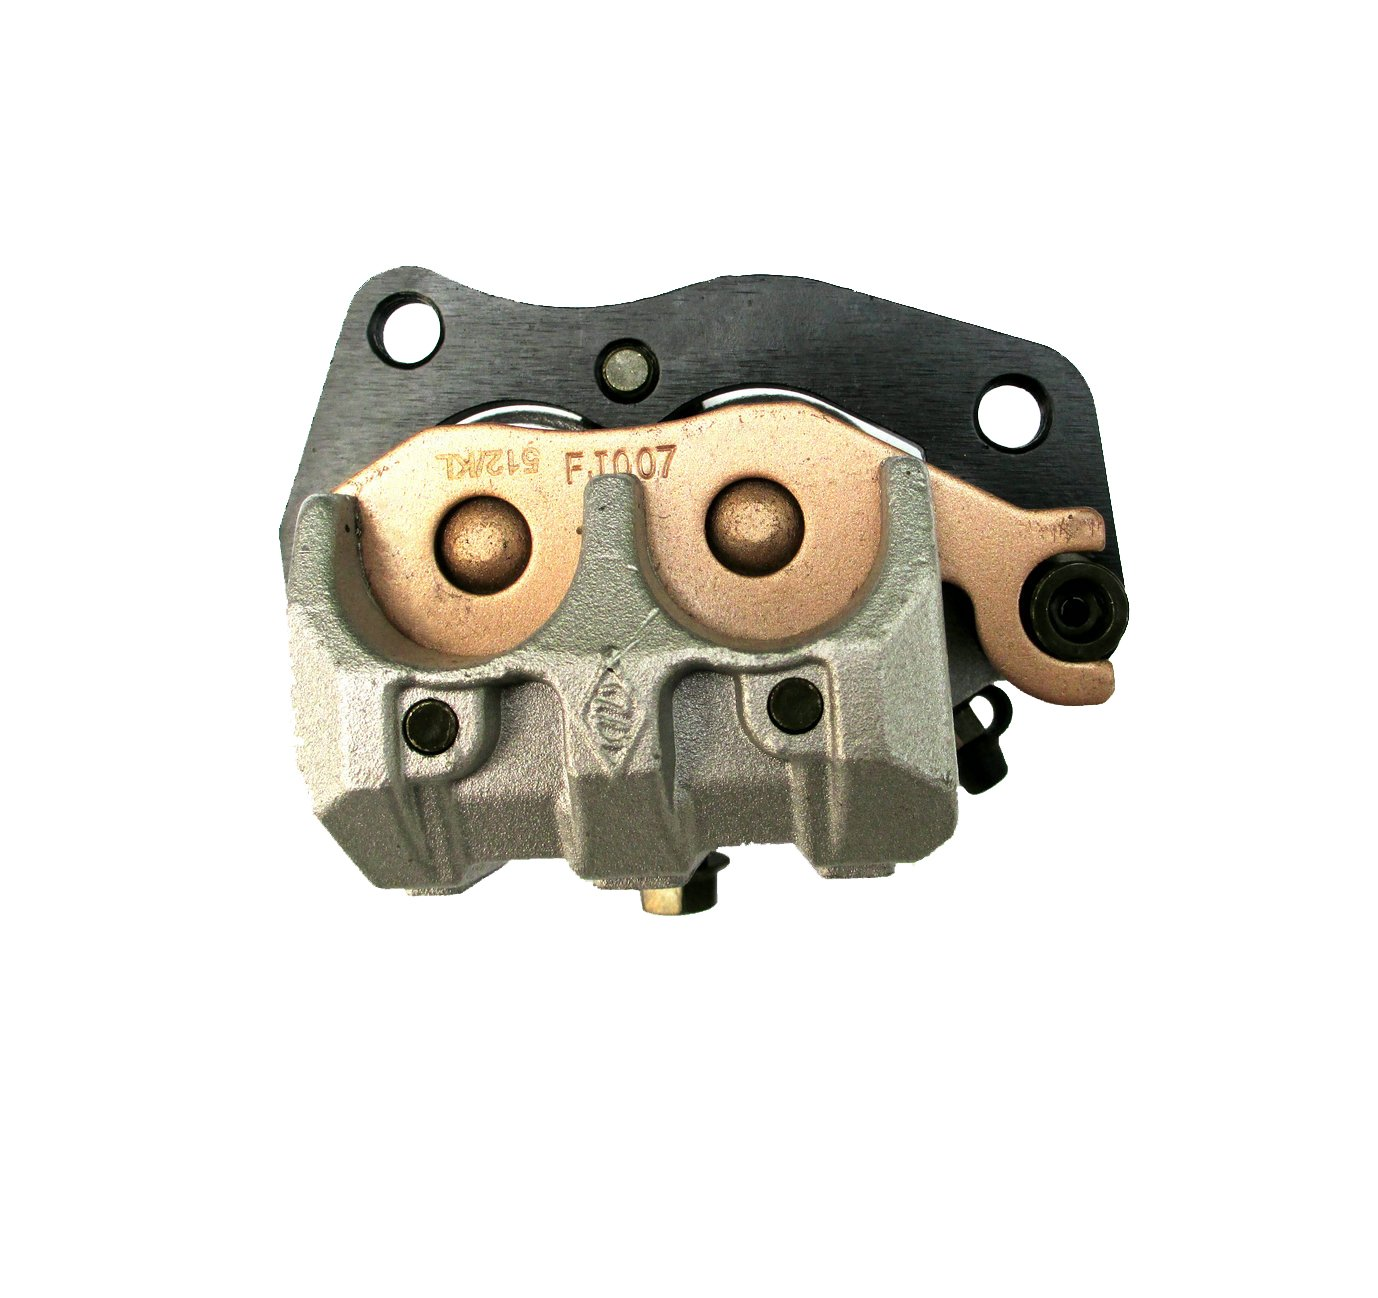 E-accexpert Left & Right Front Brake Caliper Replacement For YAMAHA RHINO 700 YXR 700 2008-2013 by WADS1000284 (Image #1)